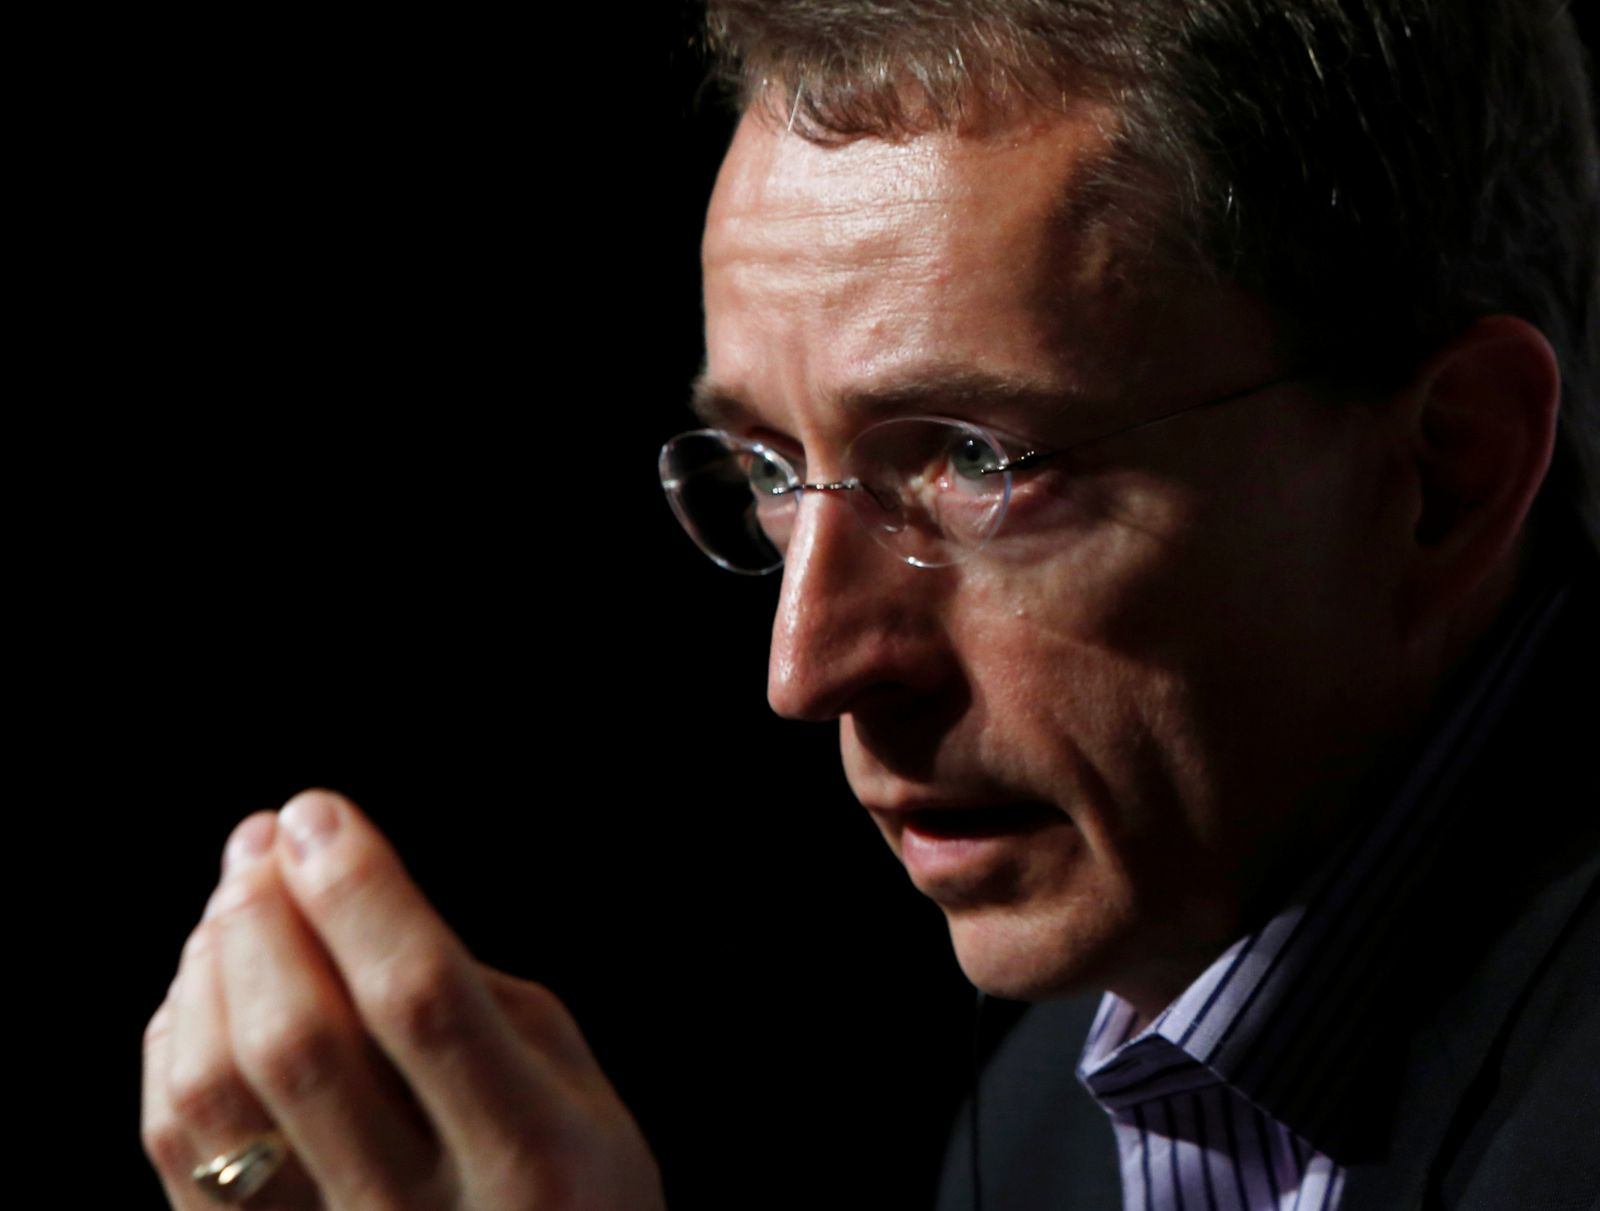 FILE PHOTO: VMware CEO Pat Gelsinger speaks during a news conference in Tokyo